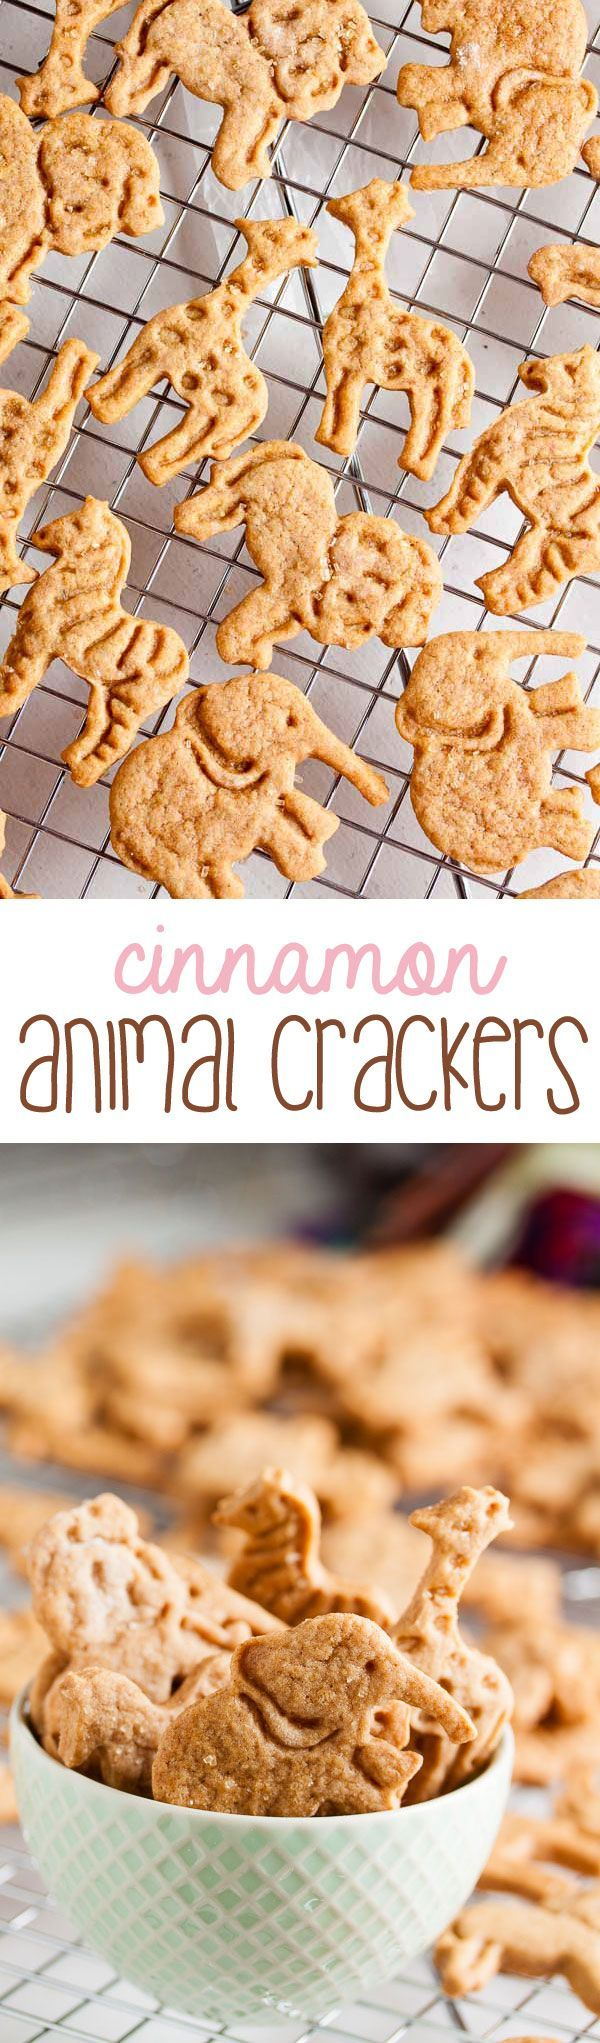 Both cinnamon and honey combine to give these soft, tender cinnamon animal crackers a flavour reminiscent of mini donuts or cinnamon buns.